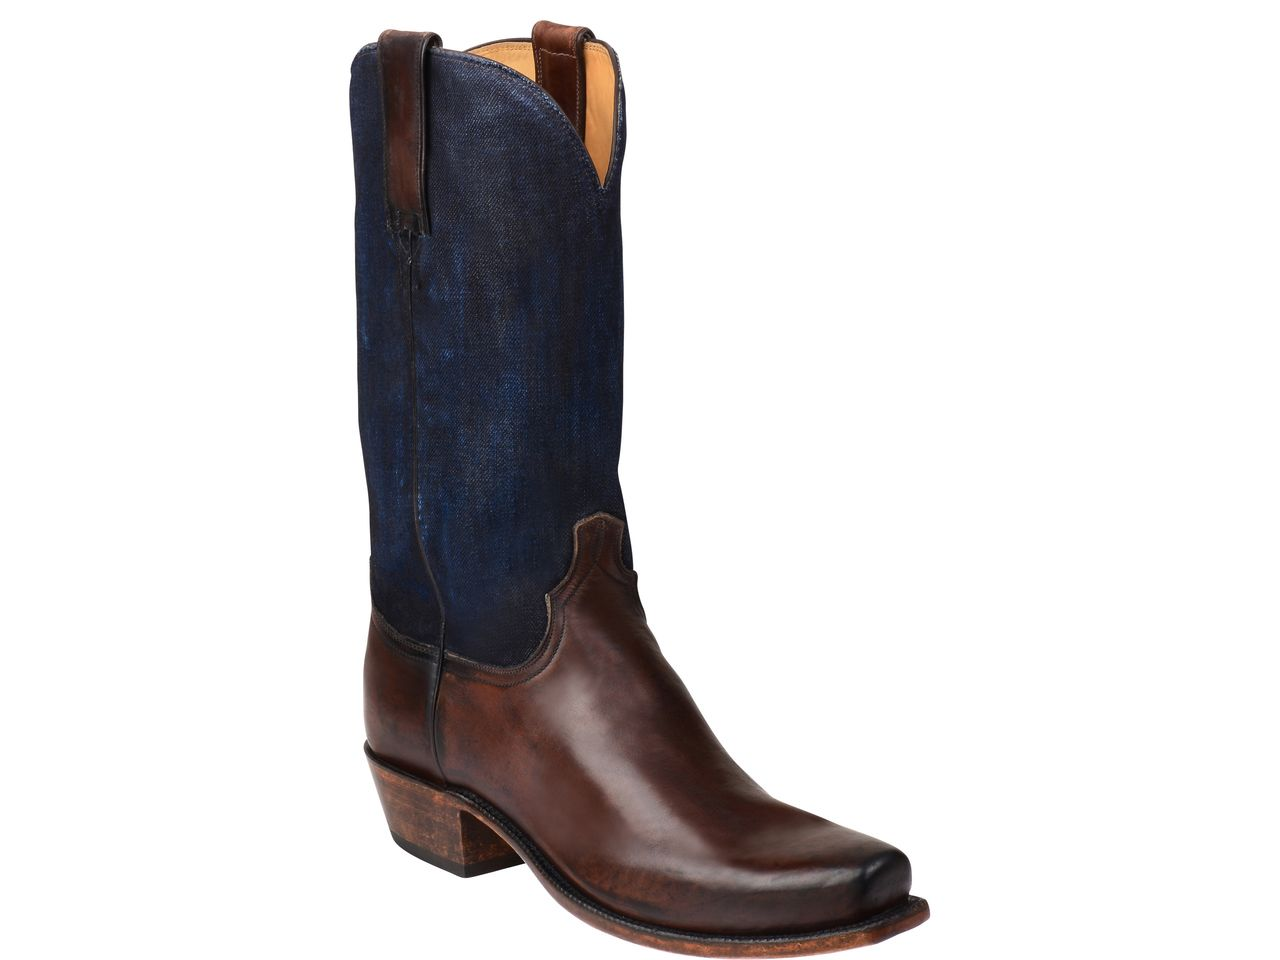 d8c2fc1c27f Shop New Lucchese GY1527.73 Colby Mens Denim and Oil Calf Leather ...